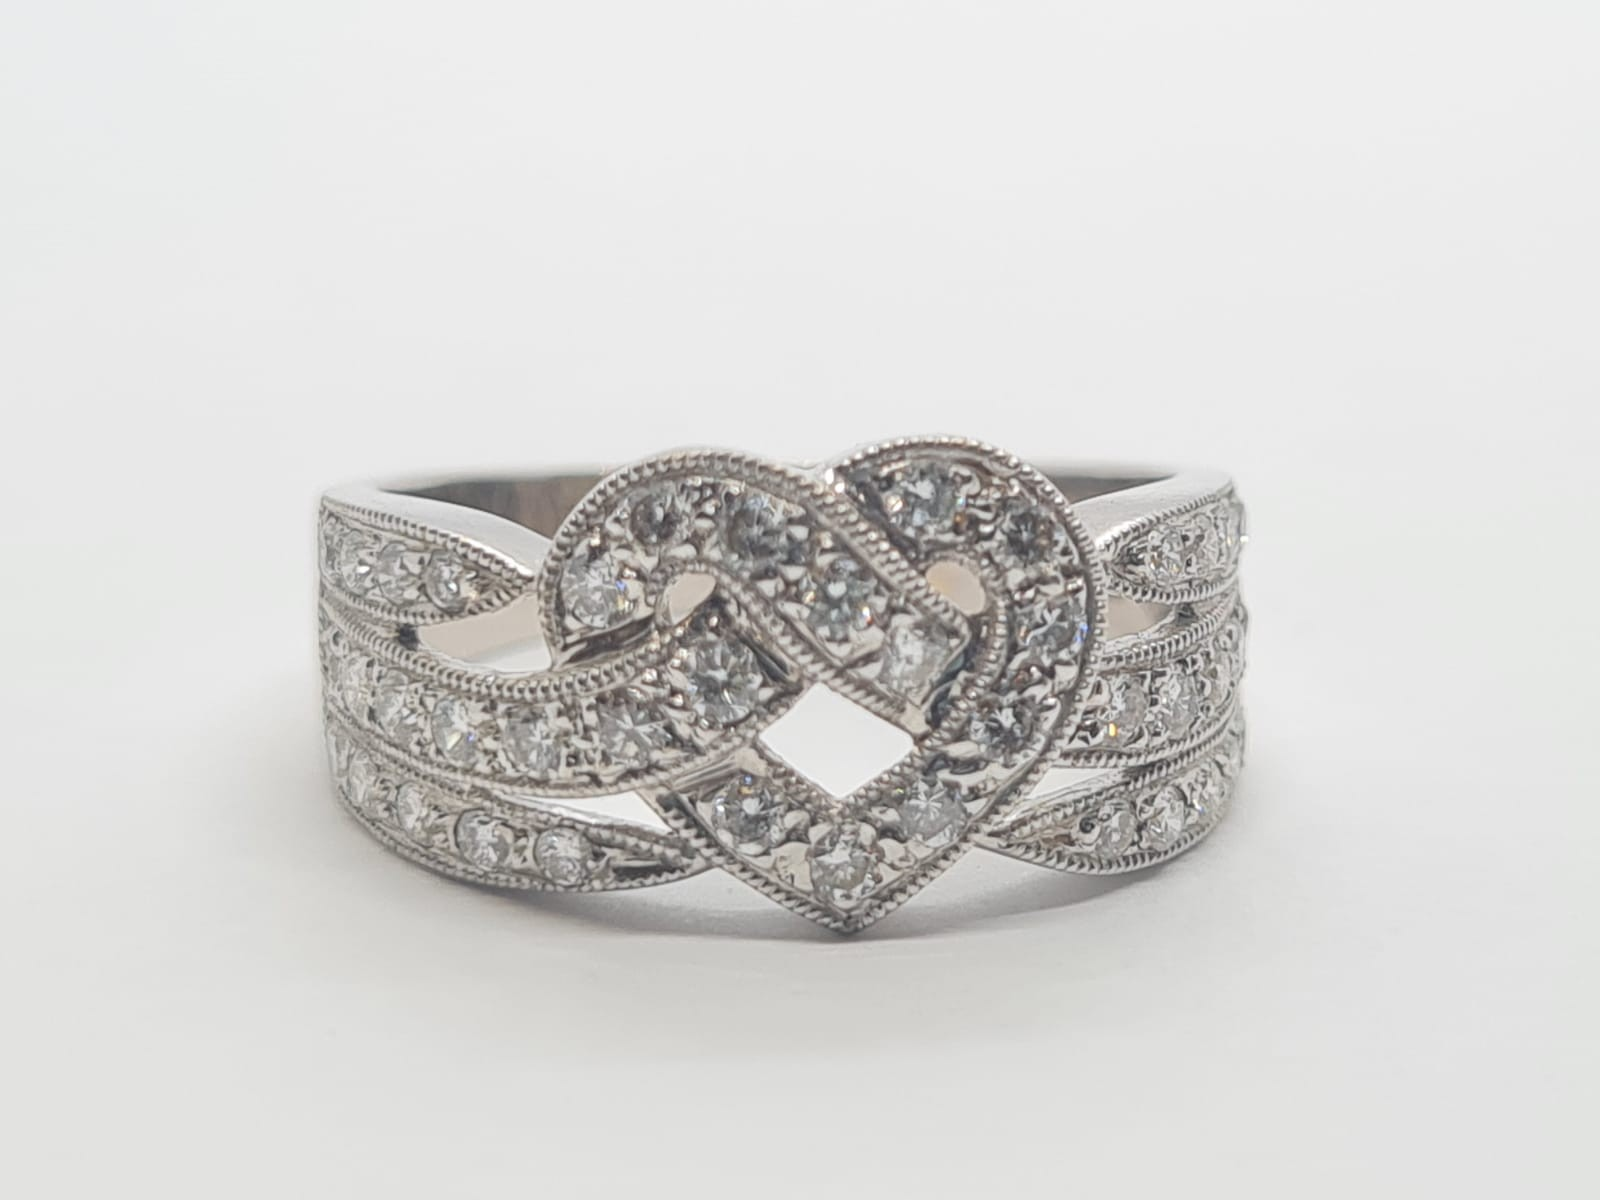 18k white gold heart design diamond ring, weight 4.4g and size L and approx 1ct diamonds